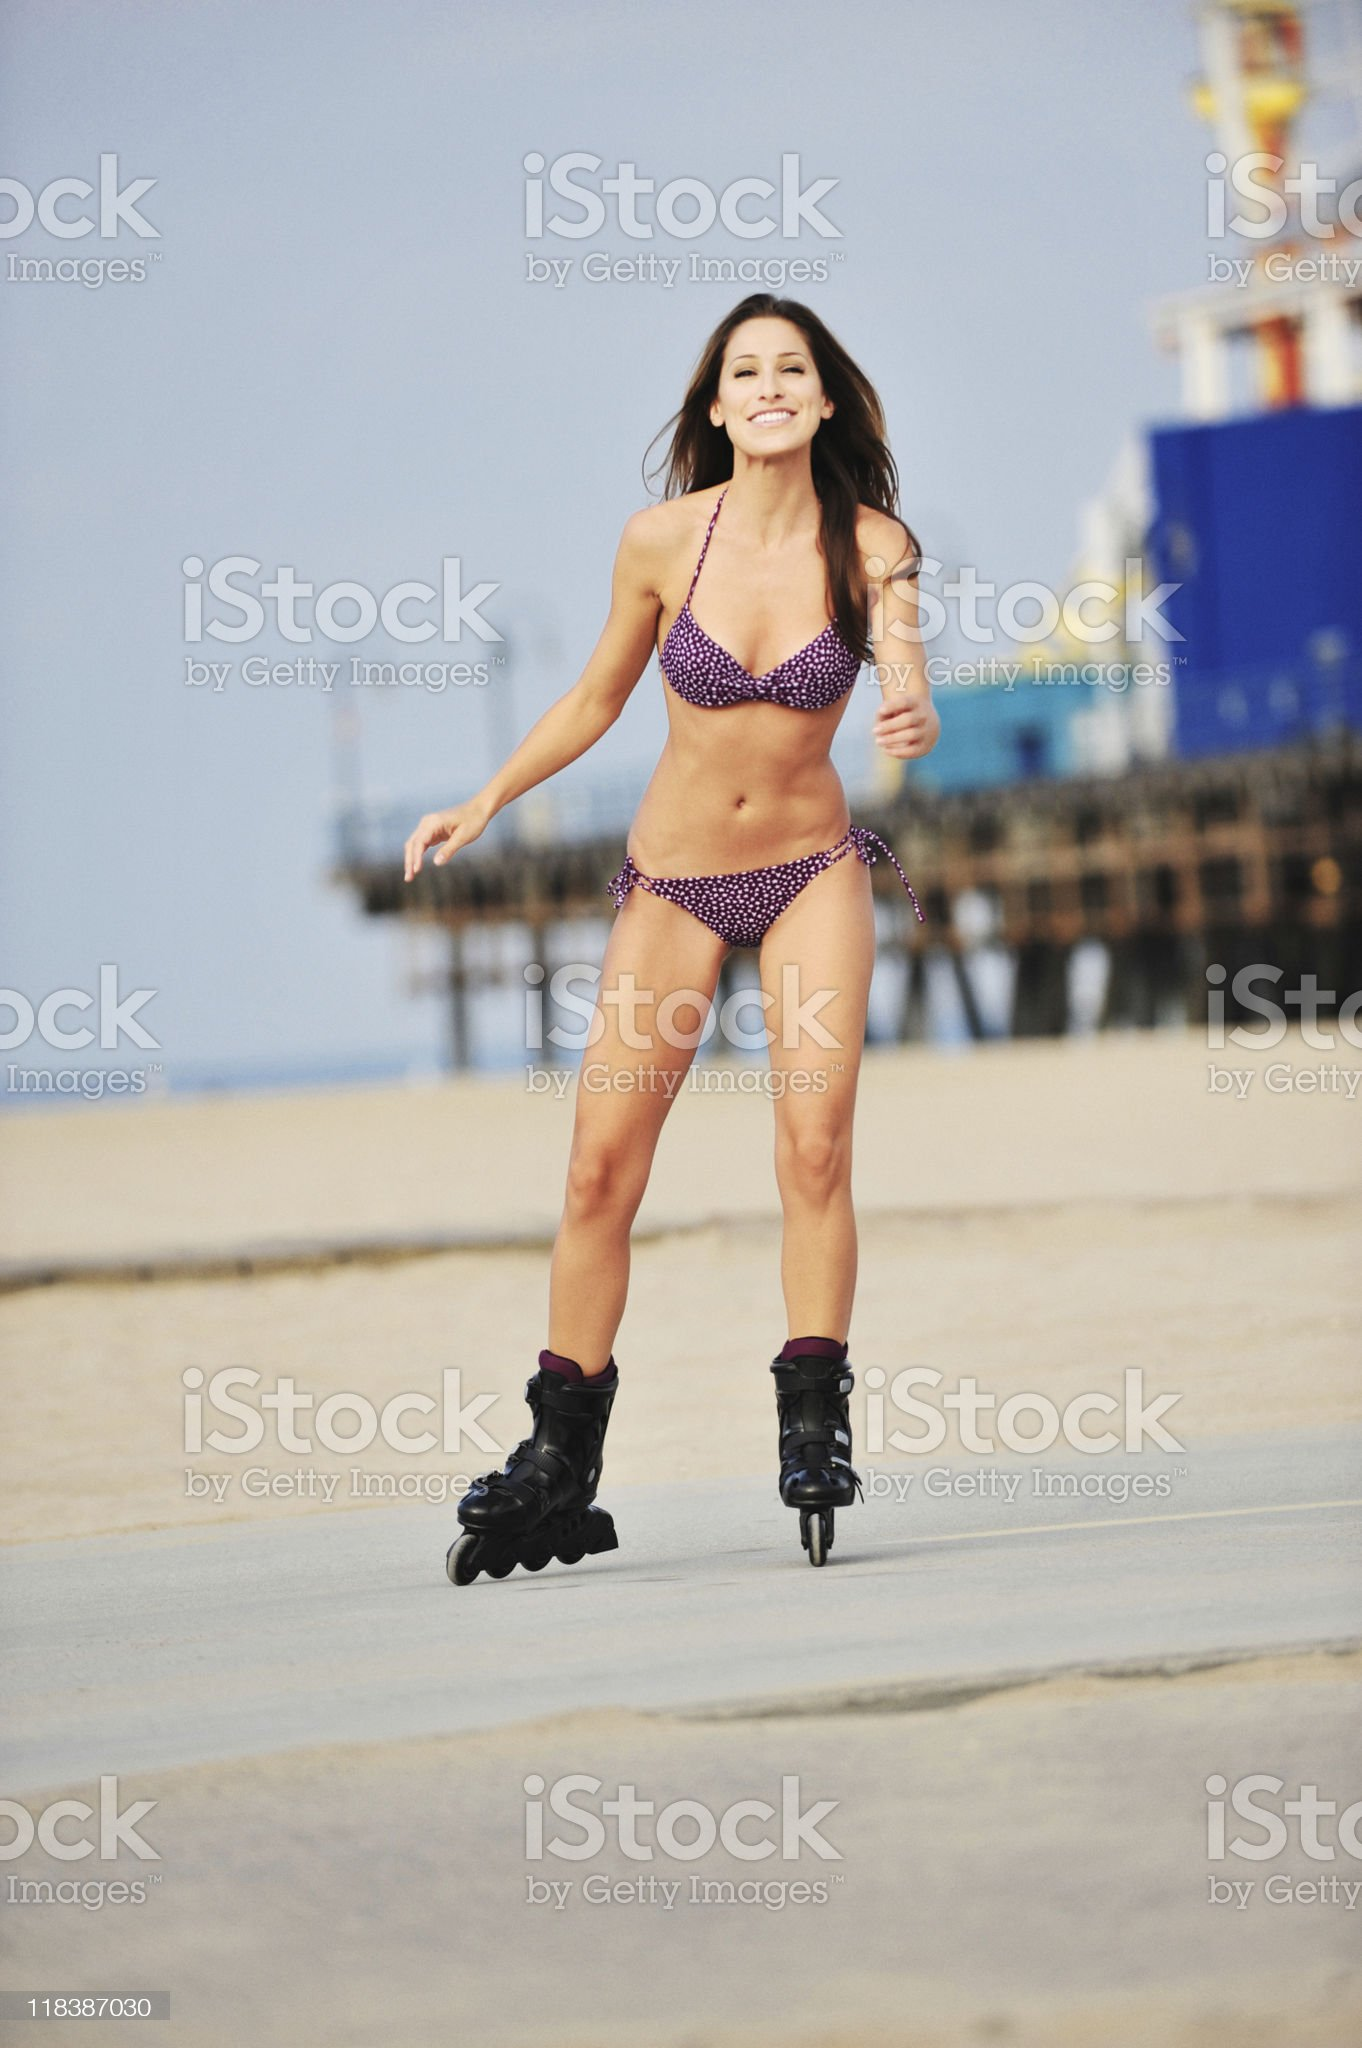 Smiling Young Woman Bikini Model Rollerblading on Santa Monica Beach royalty-free stock photo